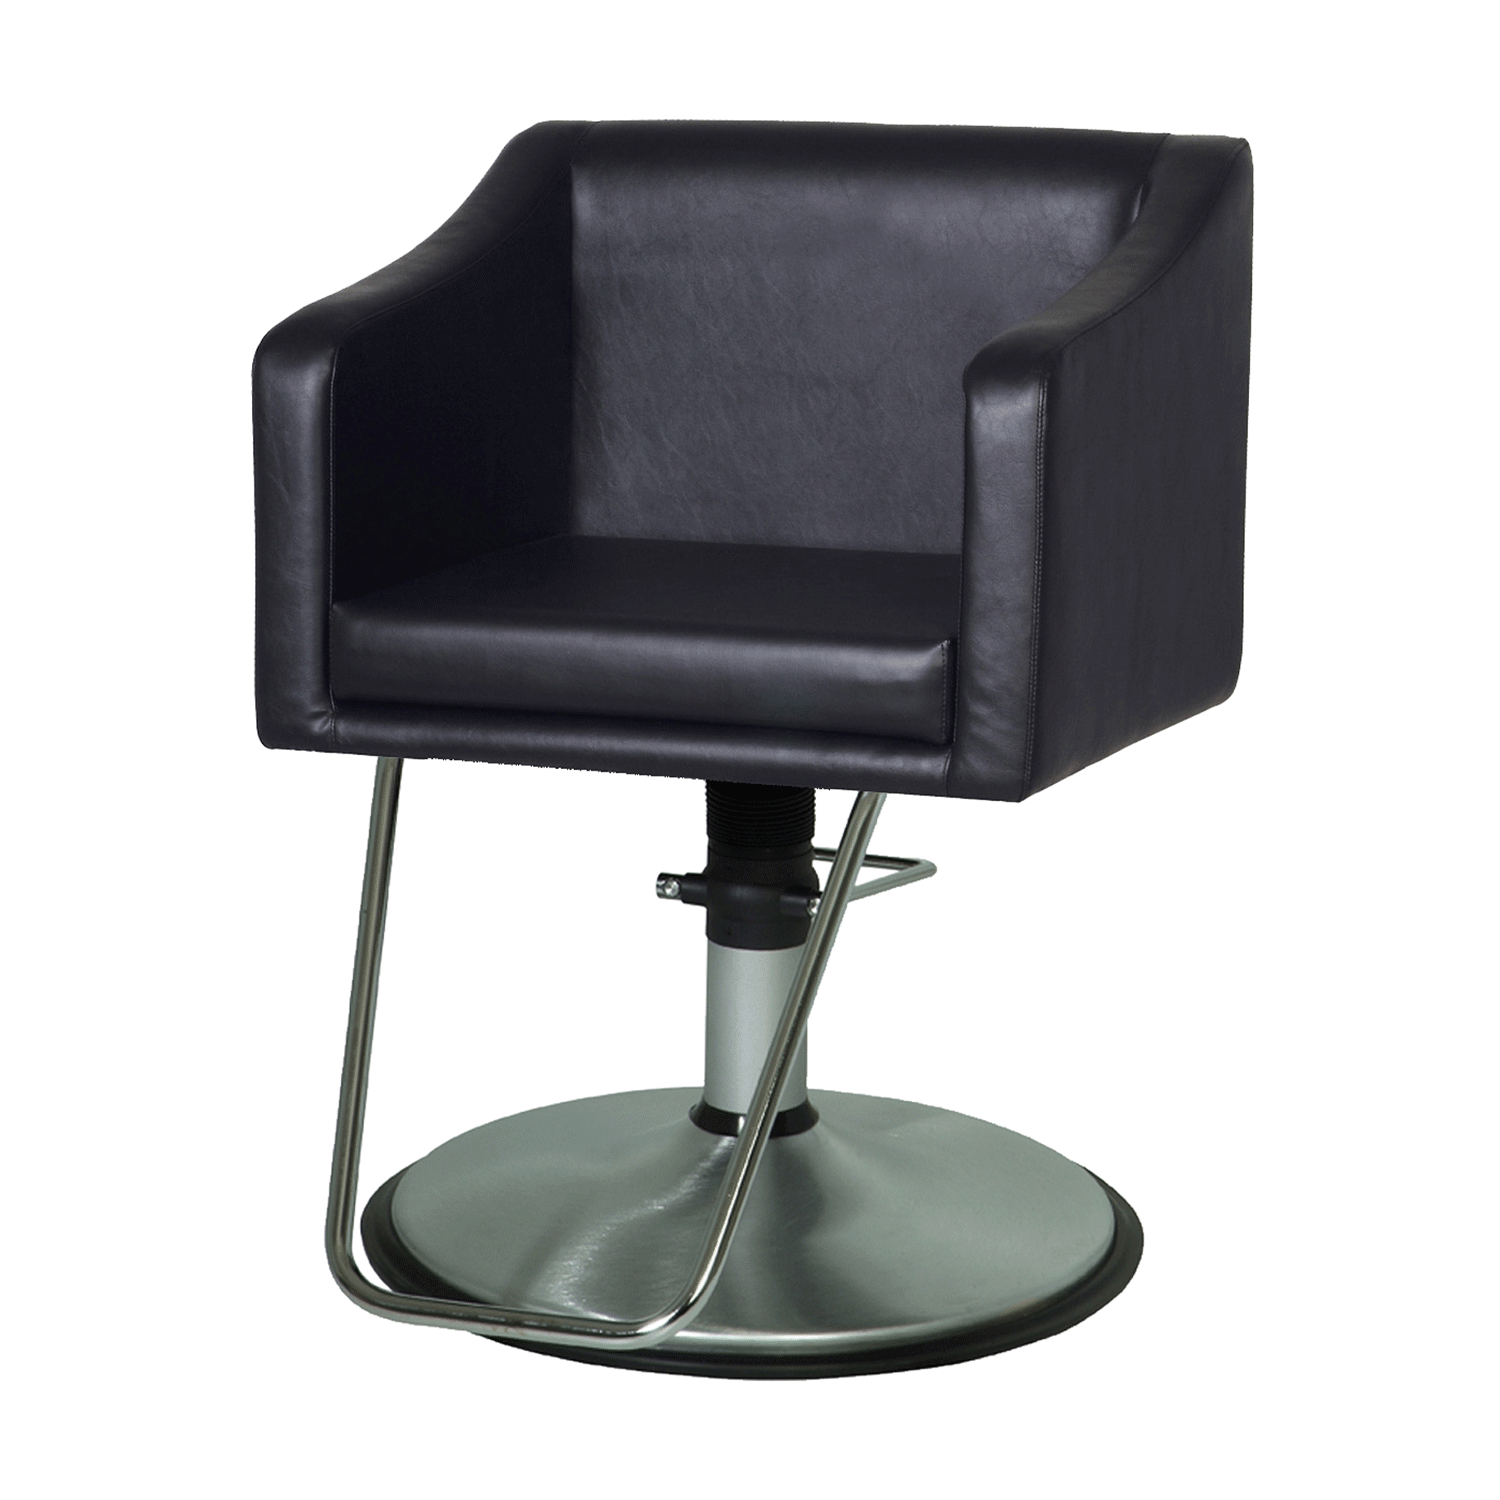 Look Styling Chair  sc 1 st  Sally Beauty & Salon Chairs Dryer Chairs u0026 Stools | Professional Salon Supplies ...